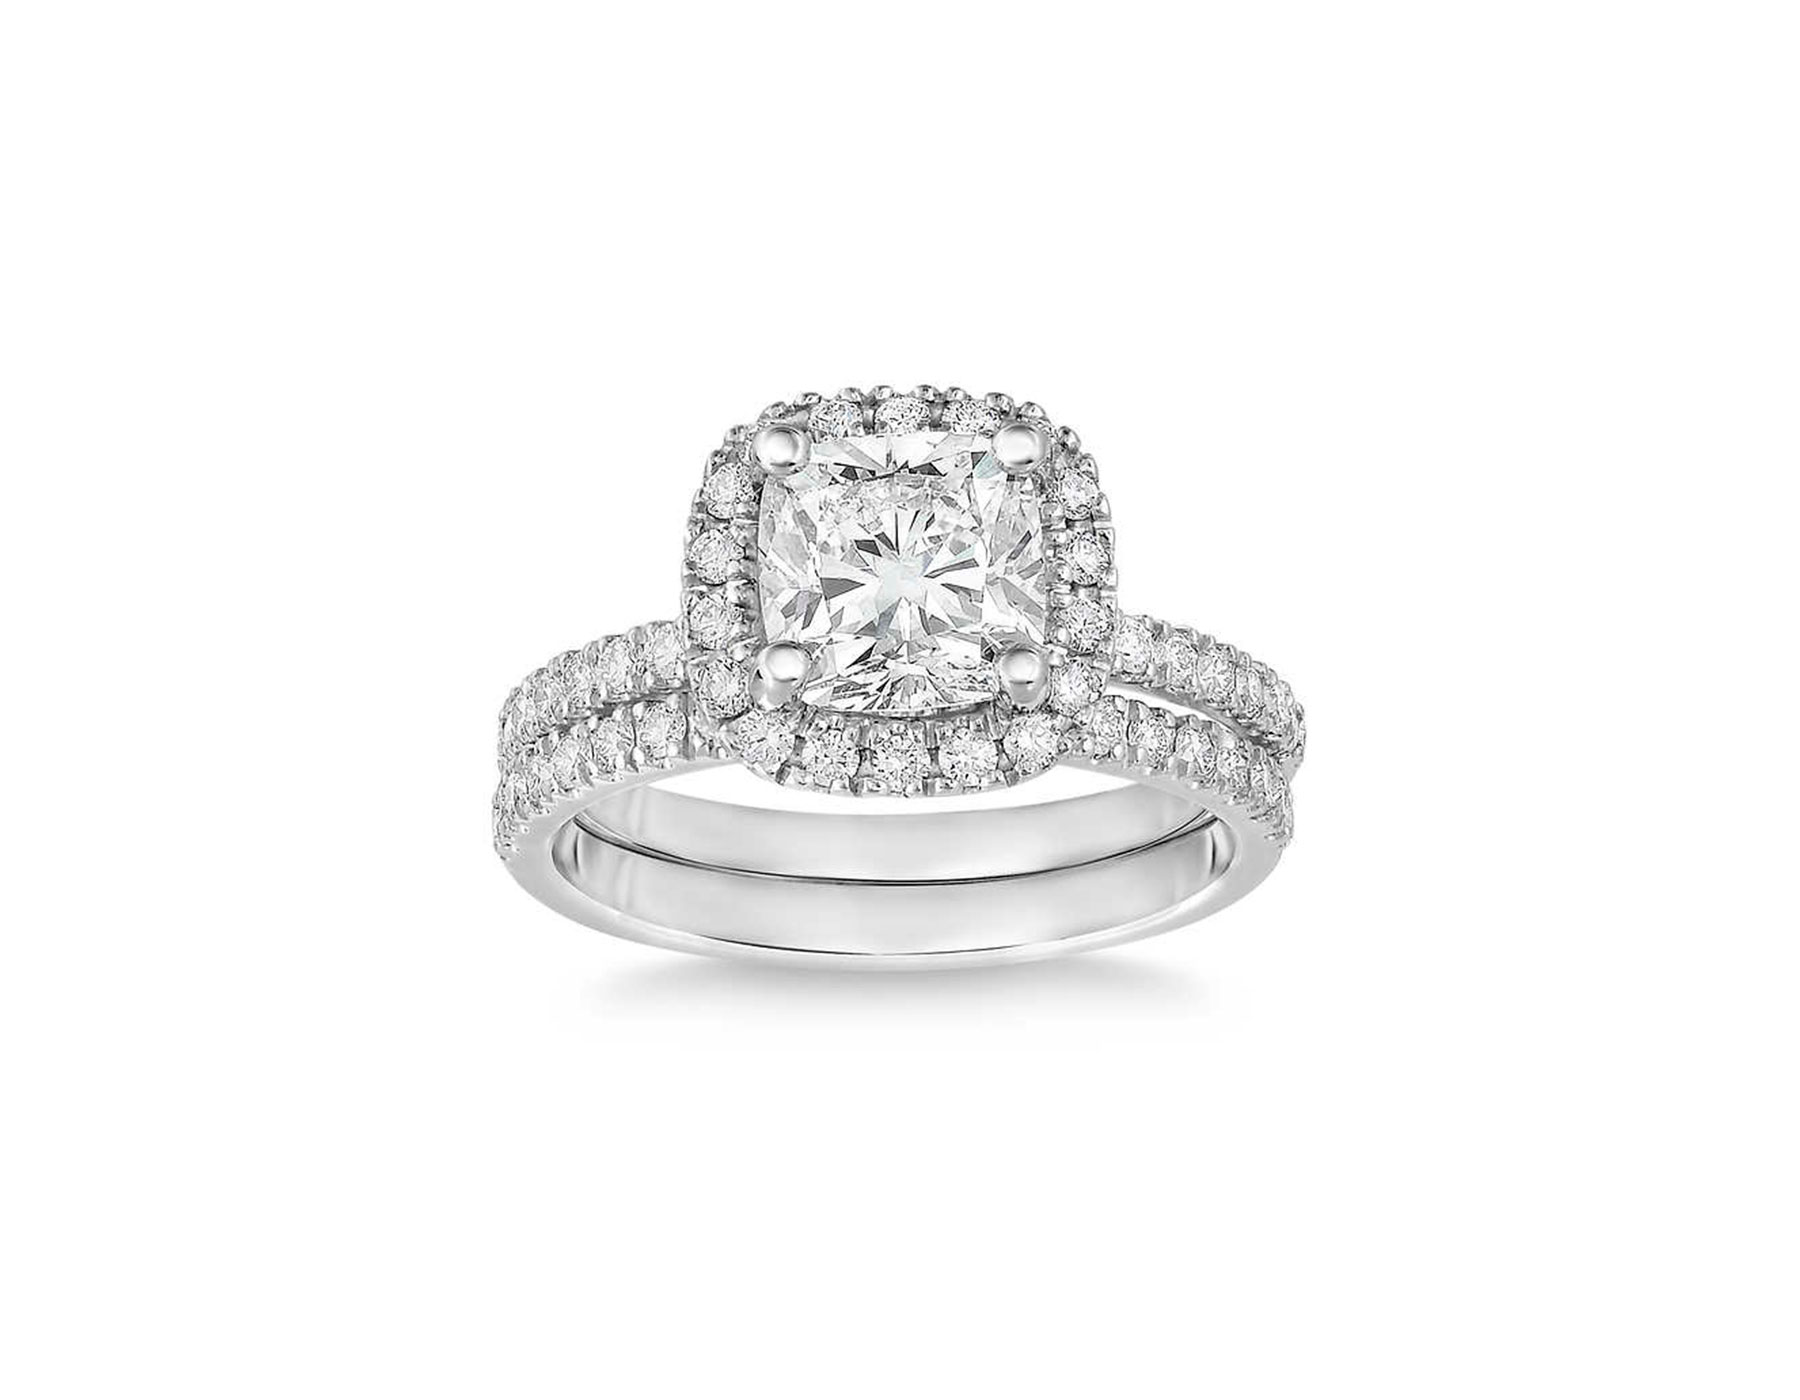 costco cushion cut diamond wedding ring set